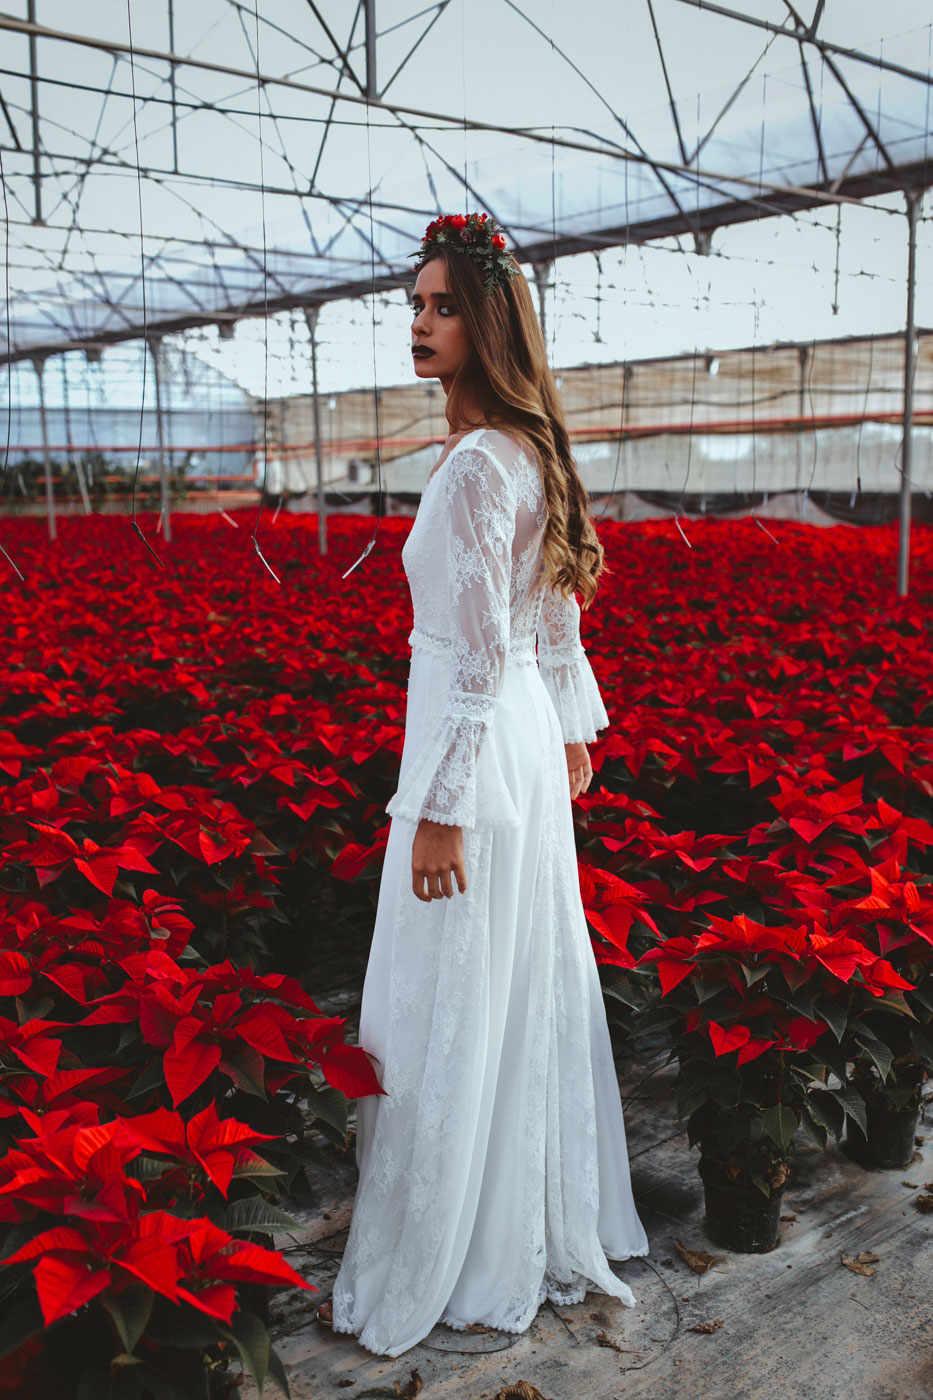 Poinsettia Farm Red Essence Spanish Wedding With Eclectic Detailing | Photograph by Carlos Lucca Fotografo  See the full wedding at http://storyboardwedding.com/poinsettia-farm-red-essence-spanish-wedding-eclectic-details/